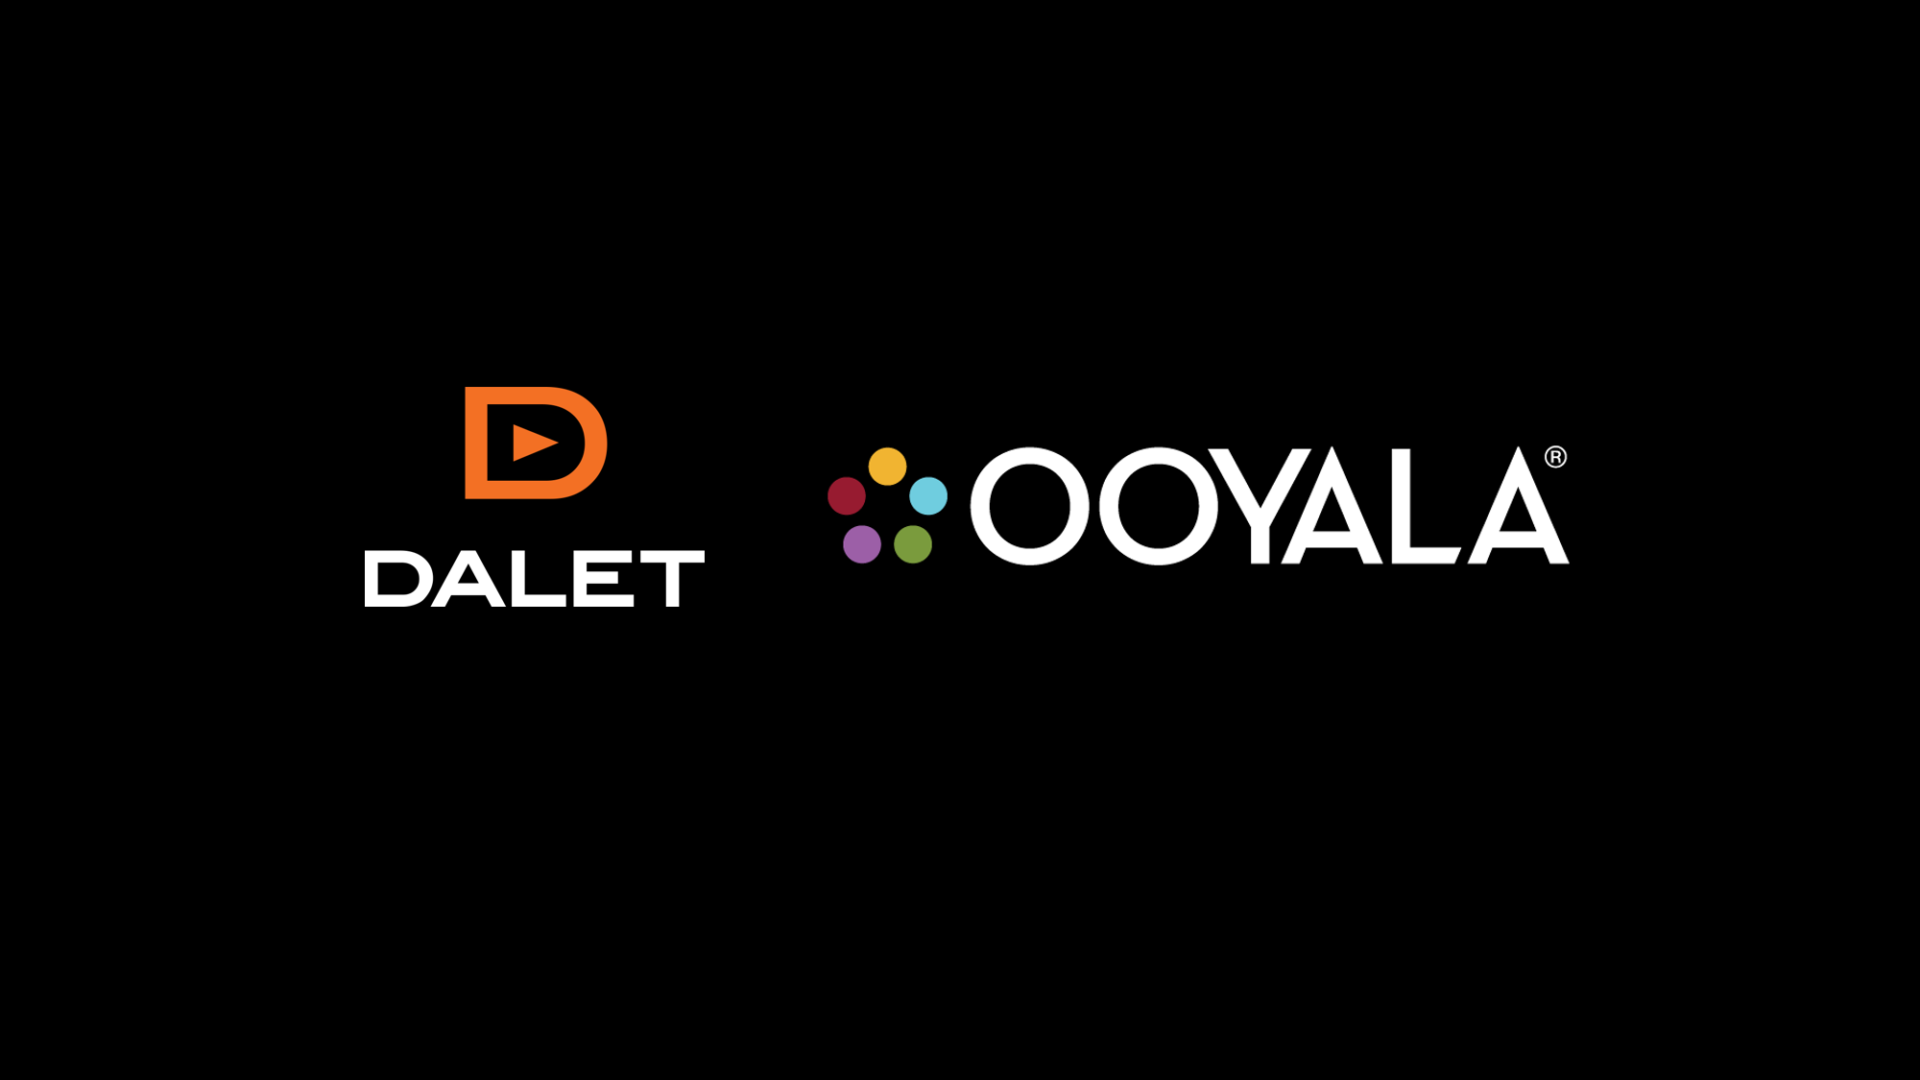 Dalet and Ooyala